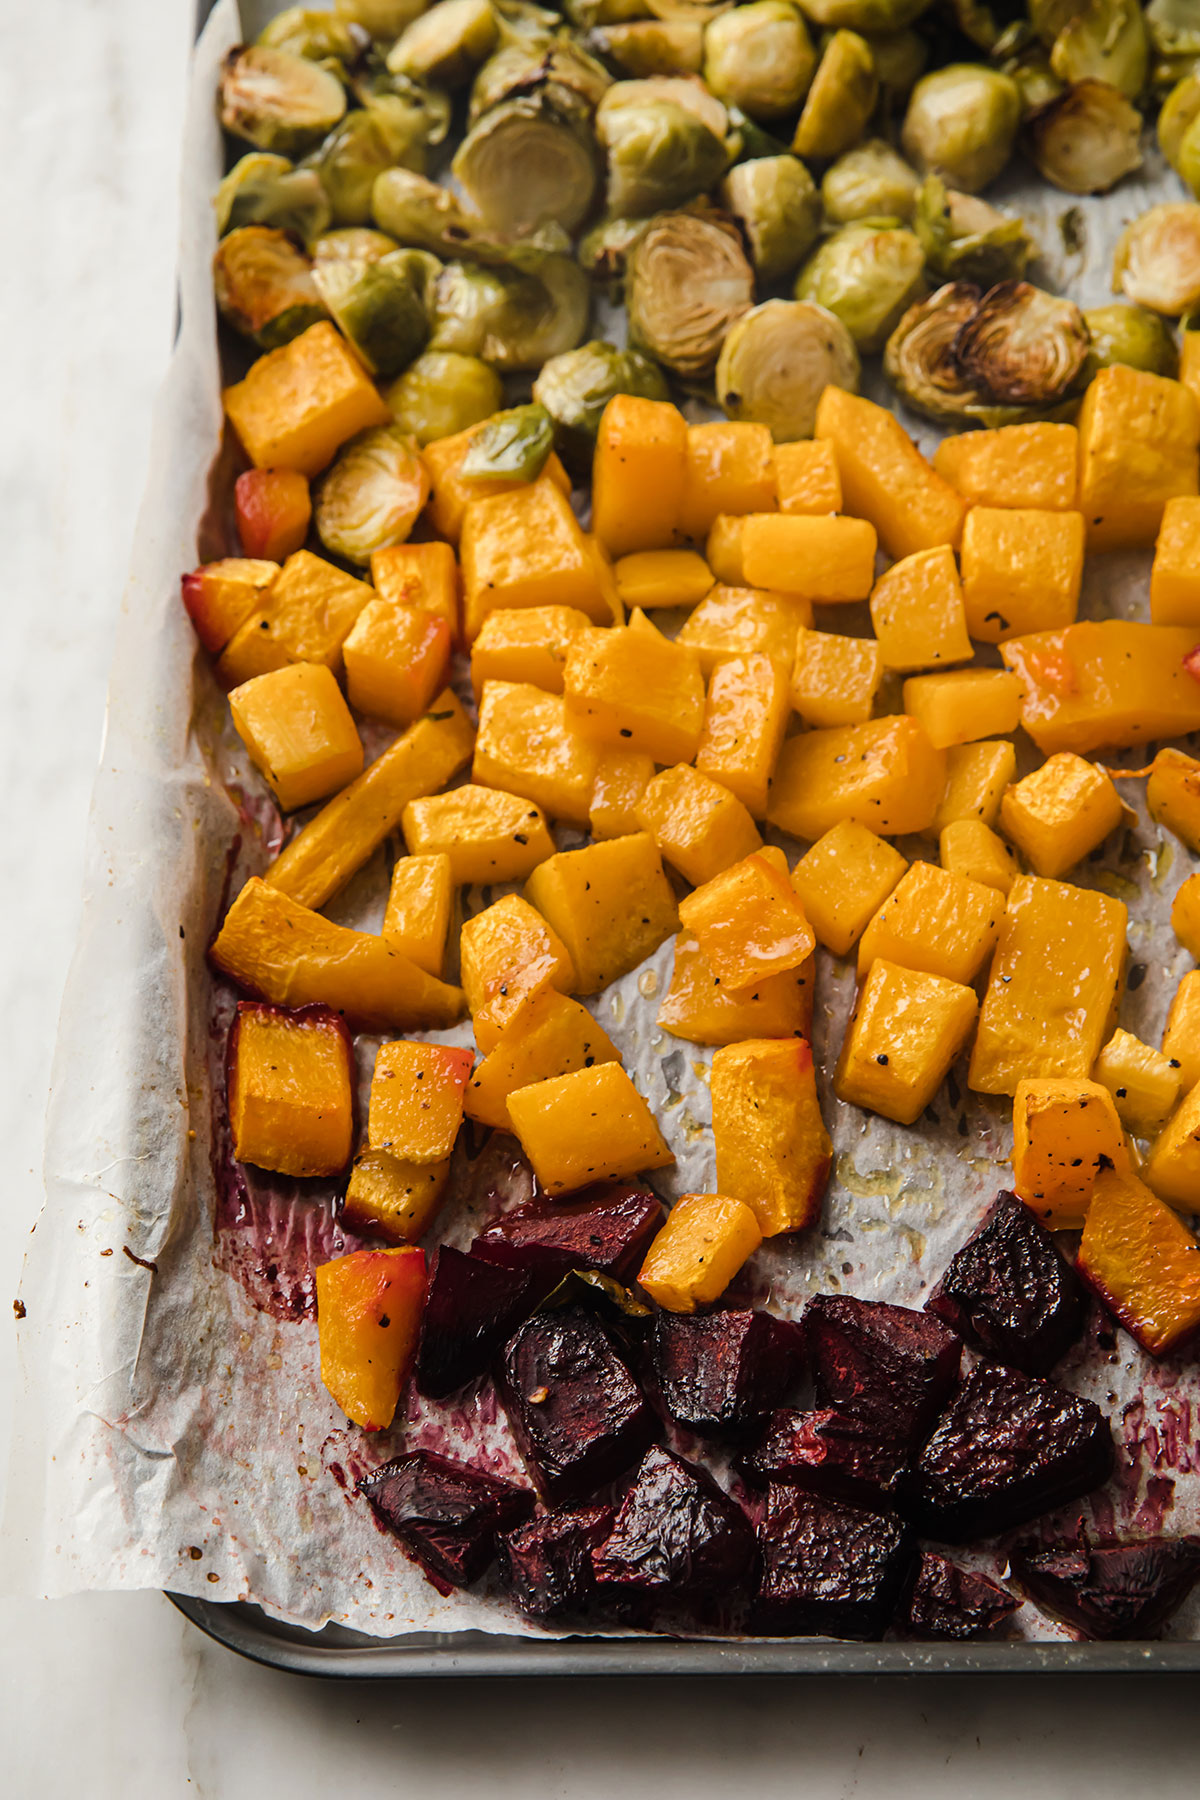 part of a baking sheet filled with chopped beets, butternut squash and halved Brussels sprouts, all roasted.